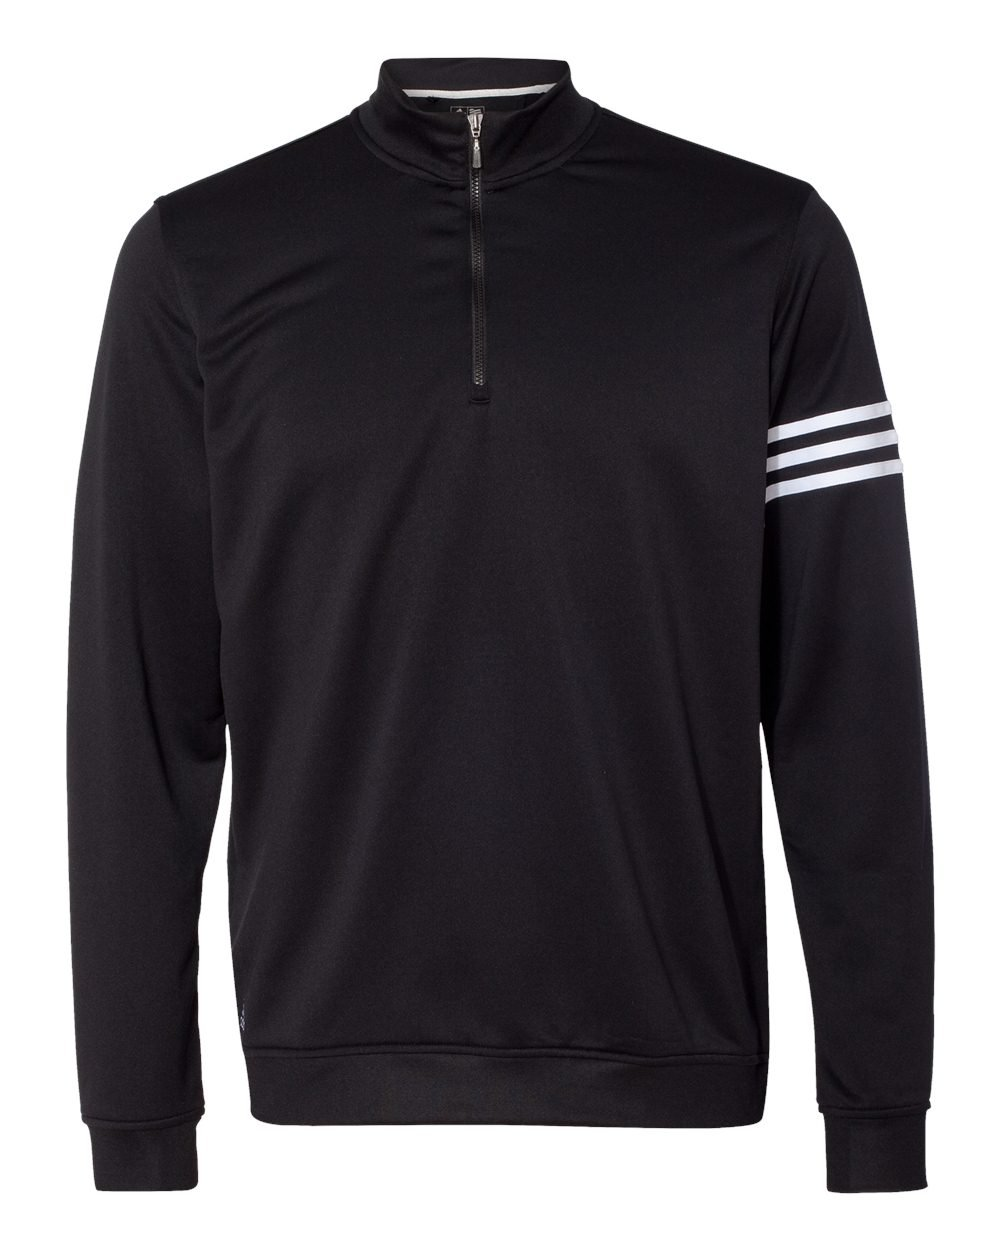 Adidas Mens ClimaLite 3-Stripes Pullover (A190) -BLACK/WHIT -4XL by adidas